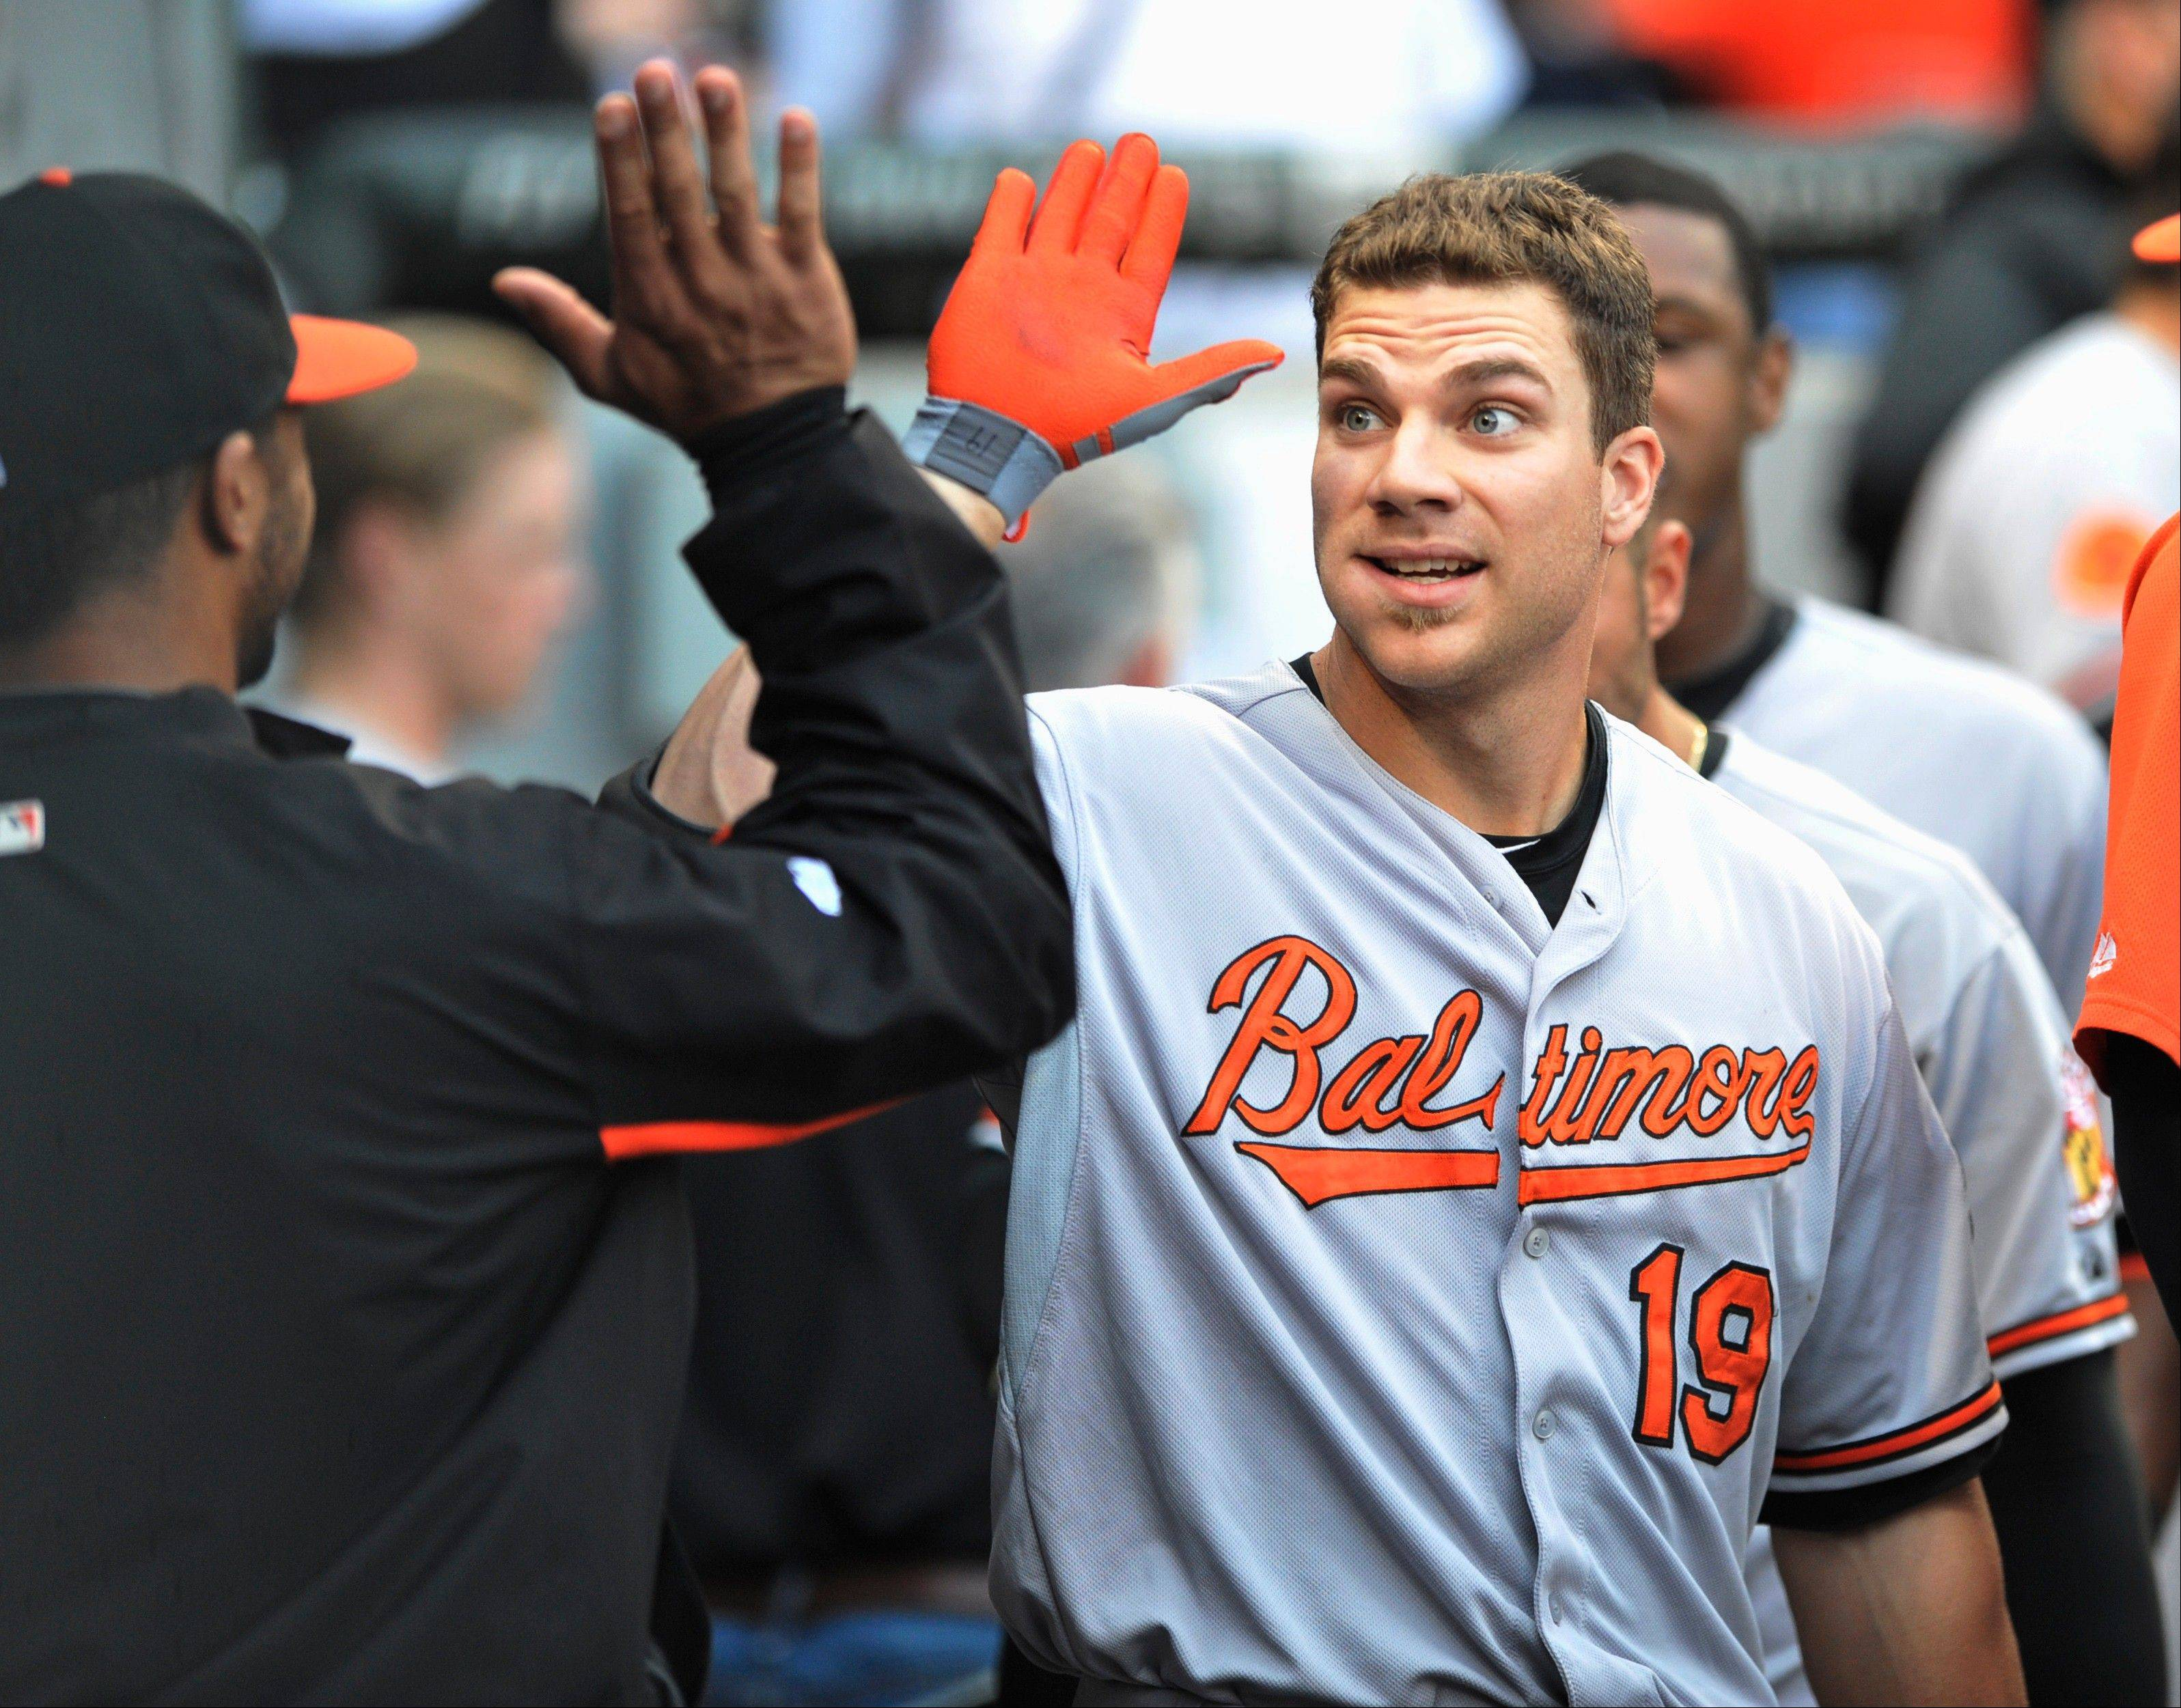 Davis powers Orioles past White Sox